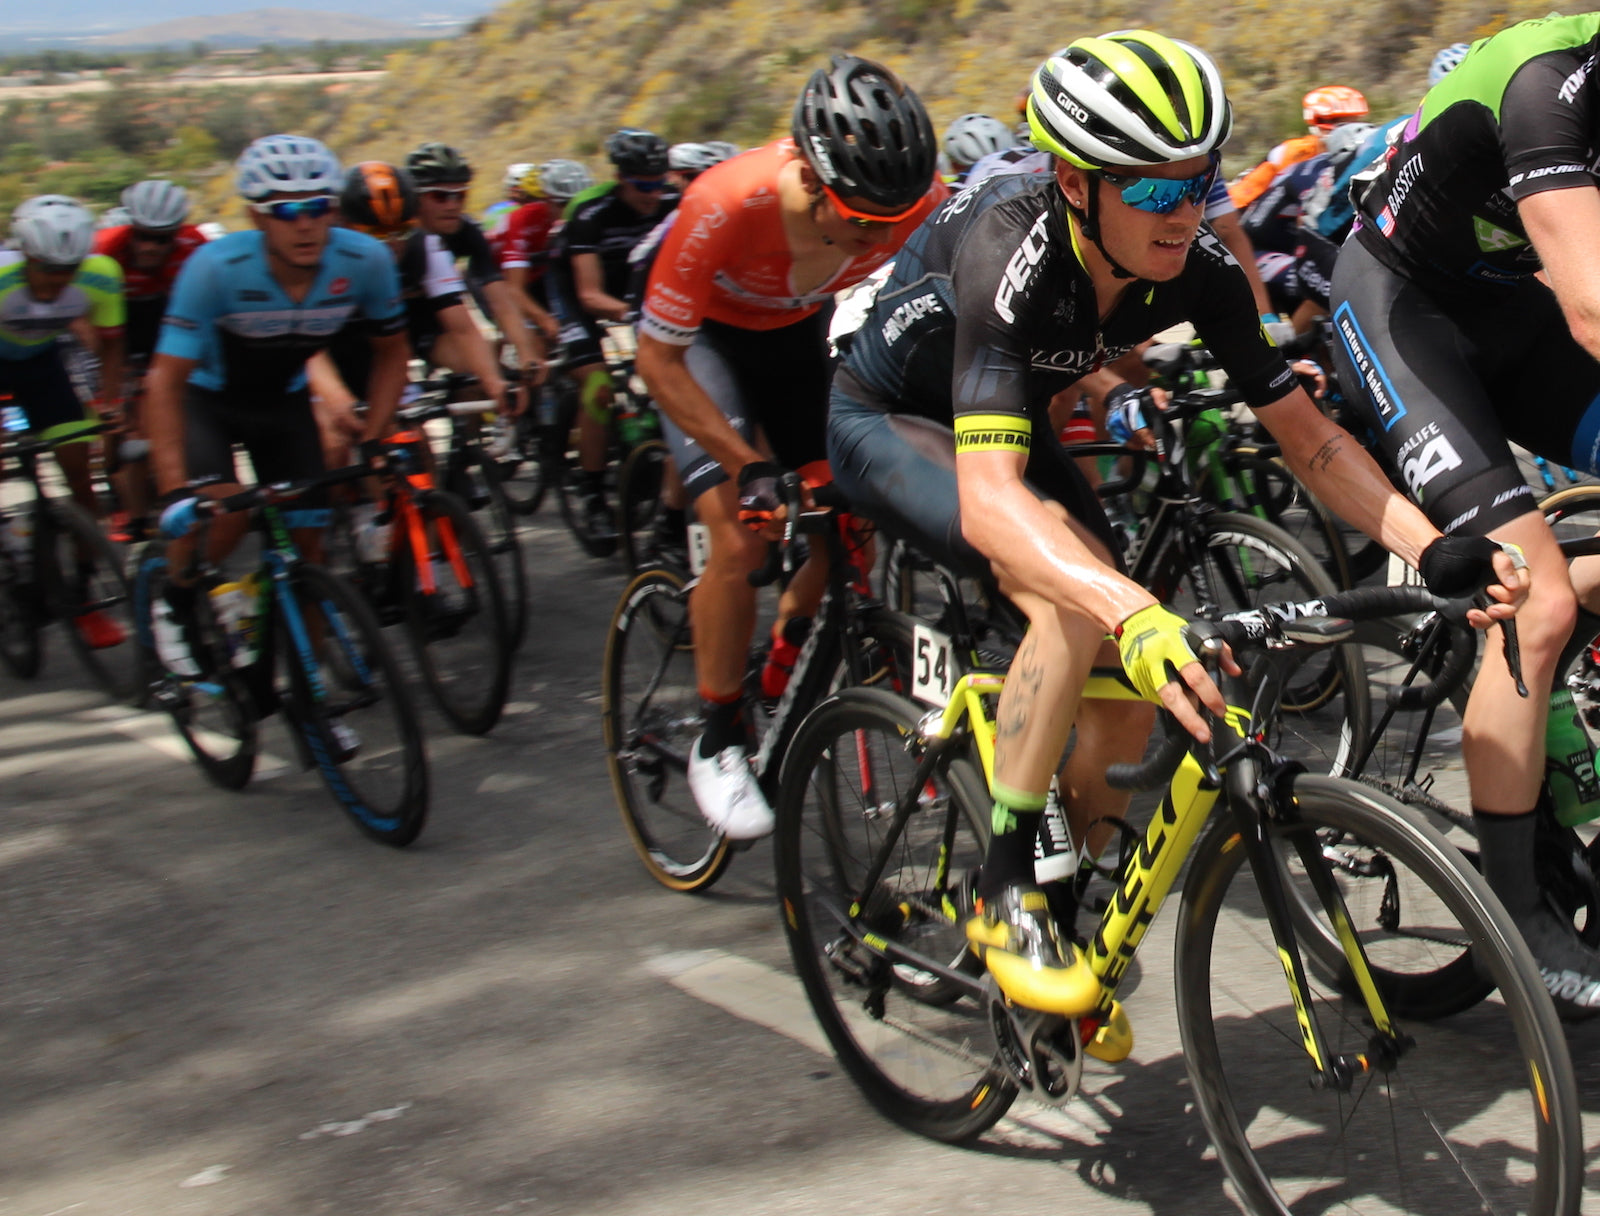 bike racer climbs hill in a group